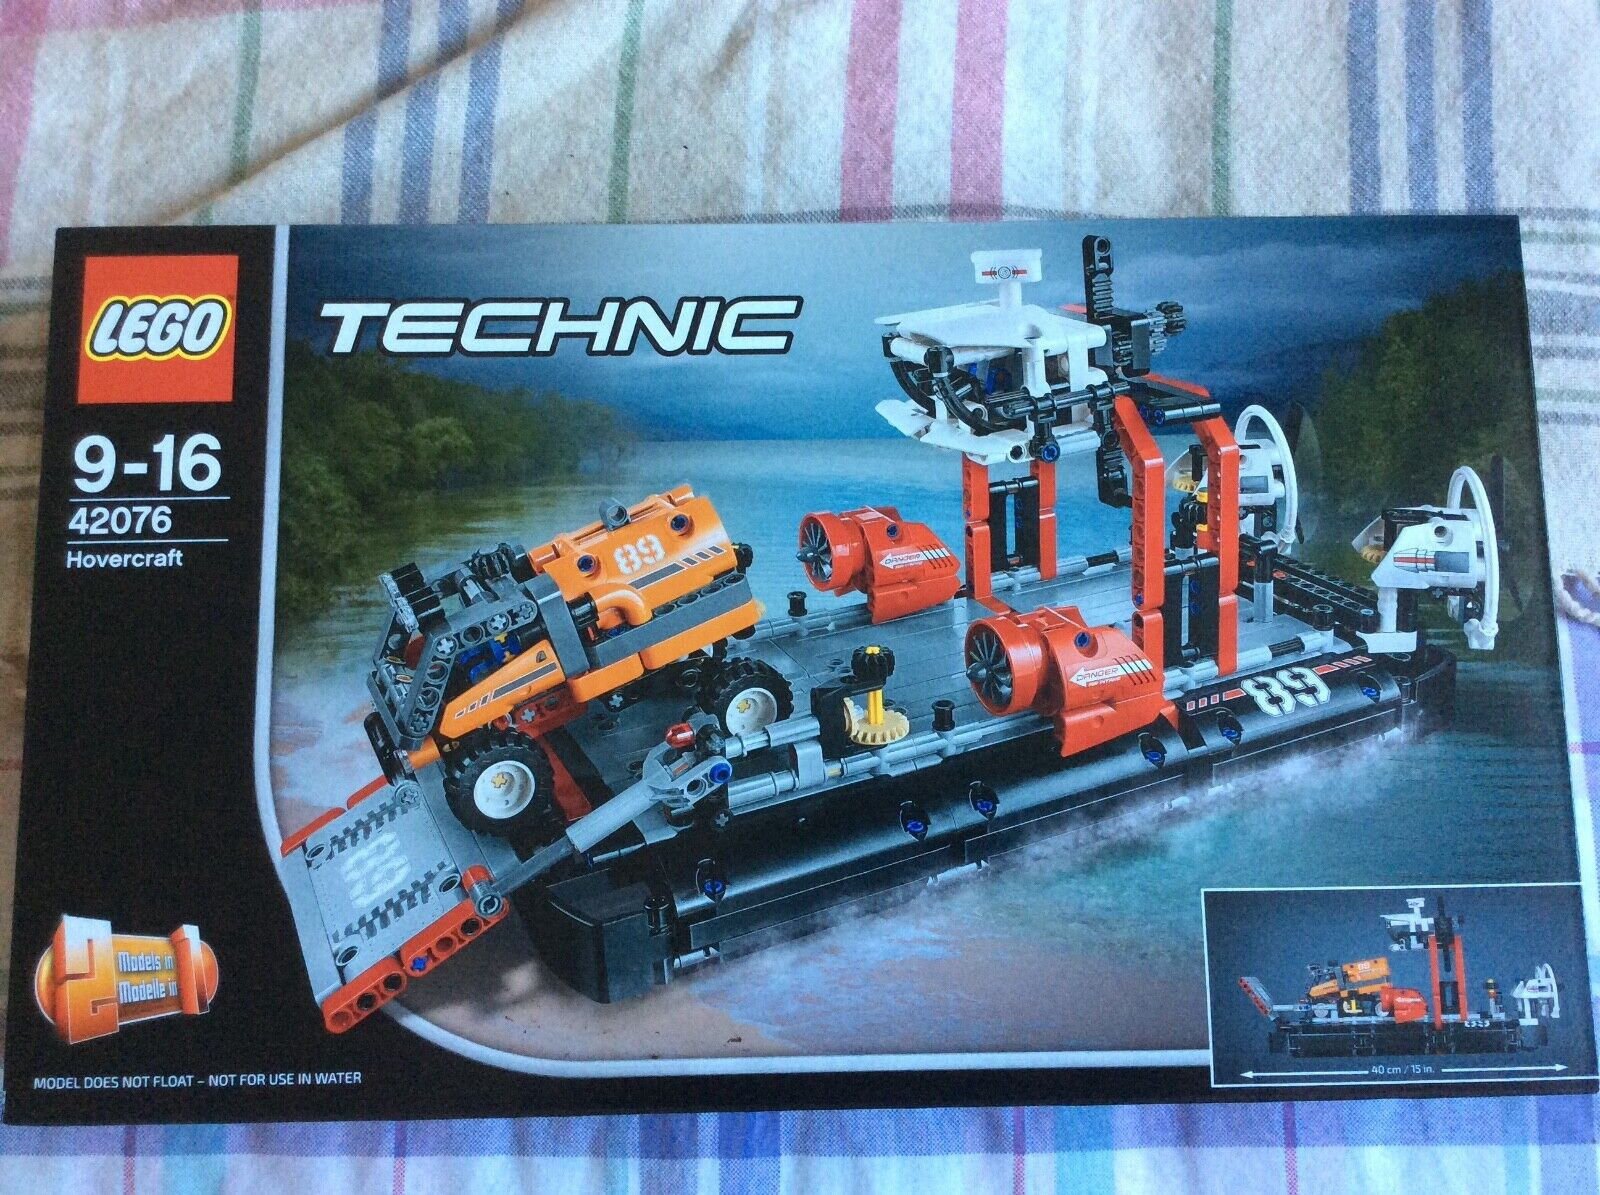 Lego Technic 42076 - Hovercraft - BRAND NEW FACTORY SEALED